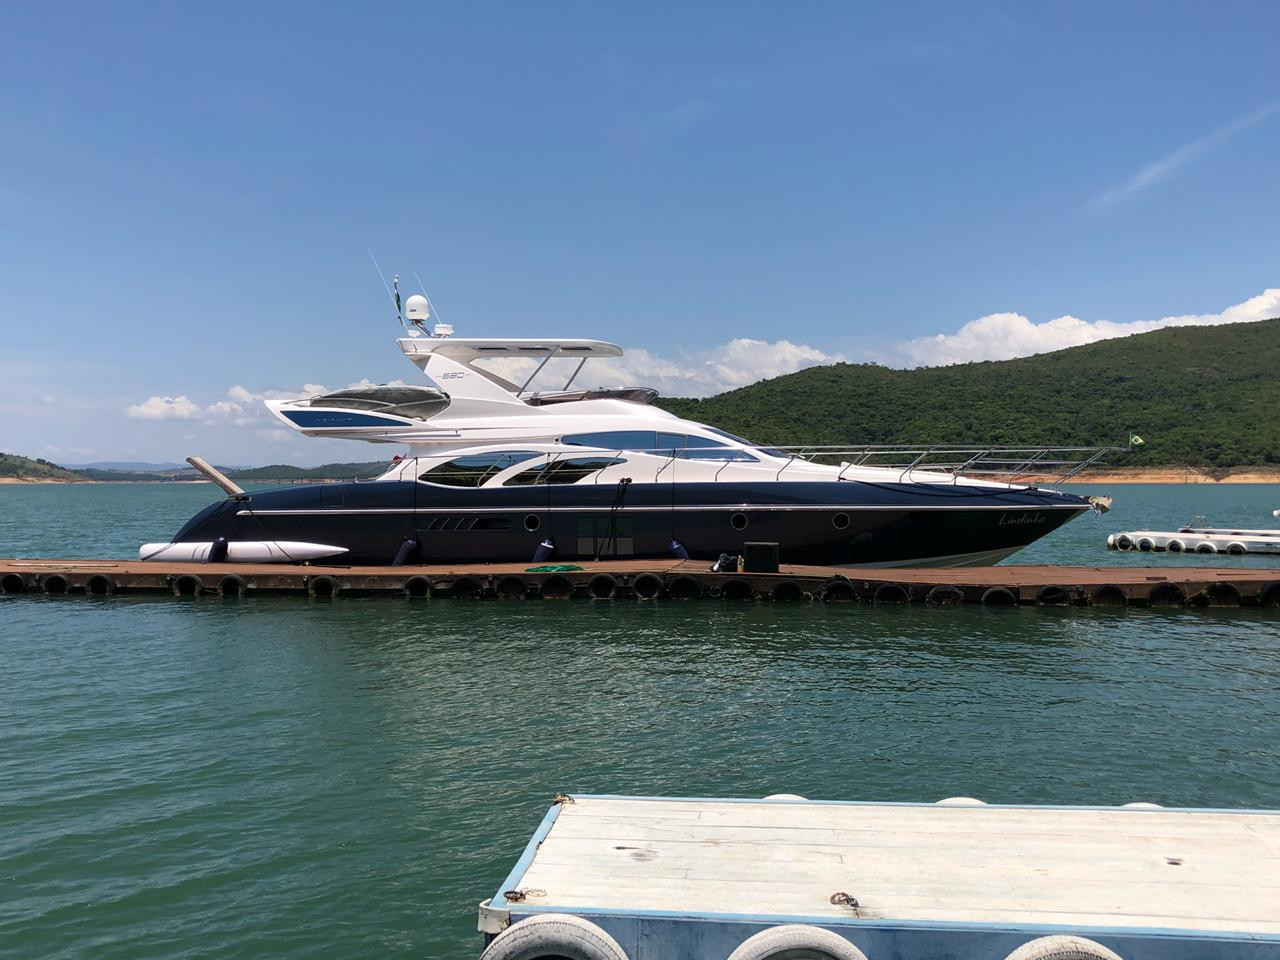 Intermarine/Azimut 680 full Ano 2009.